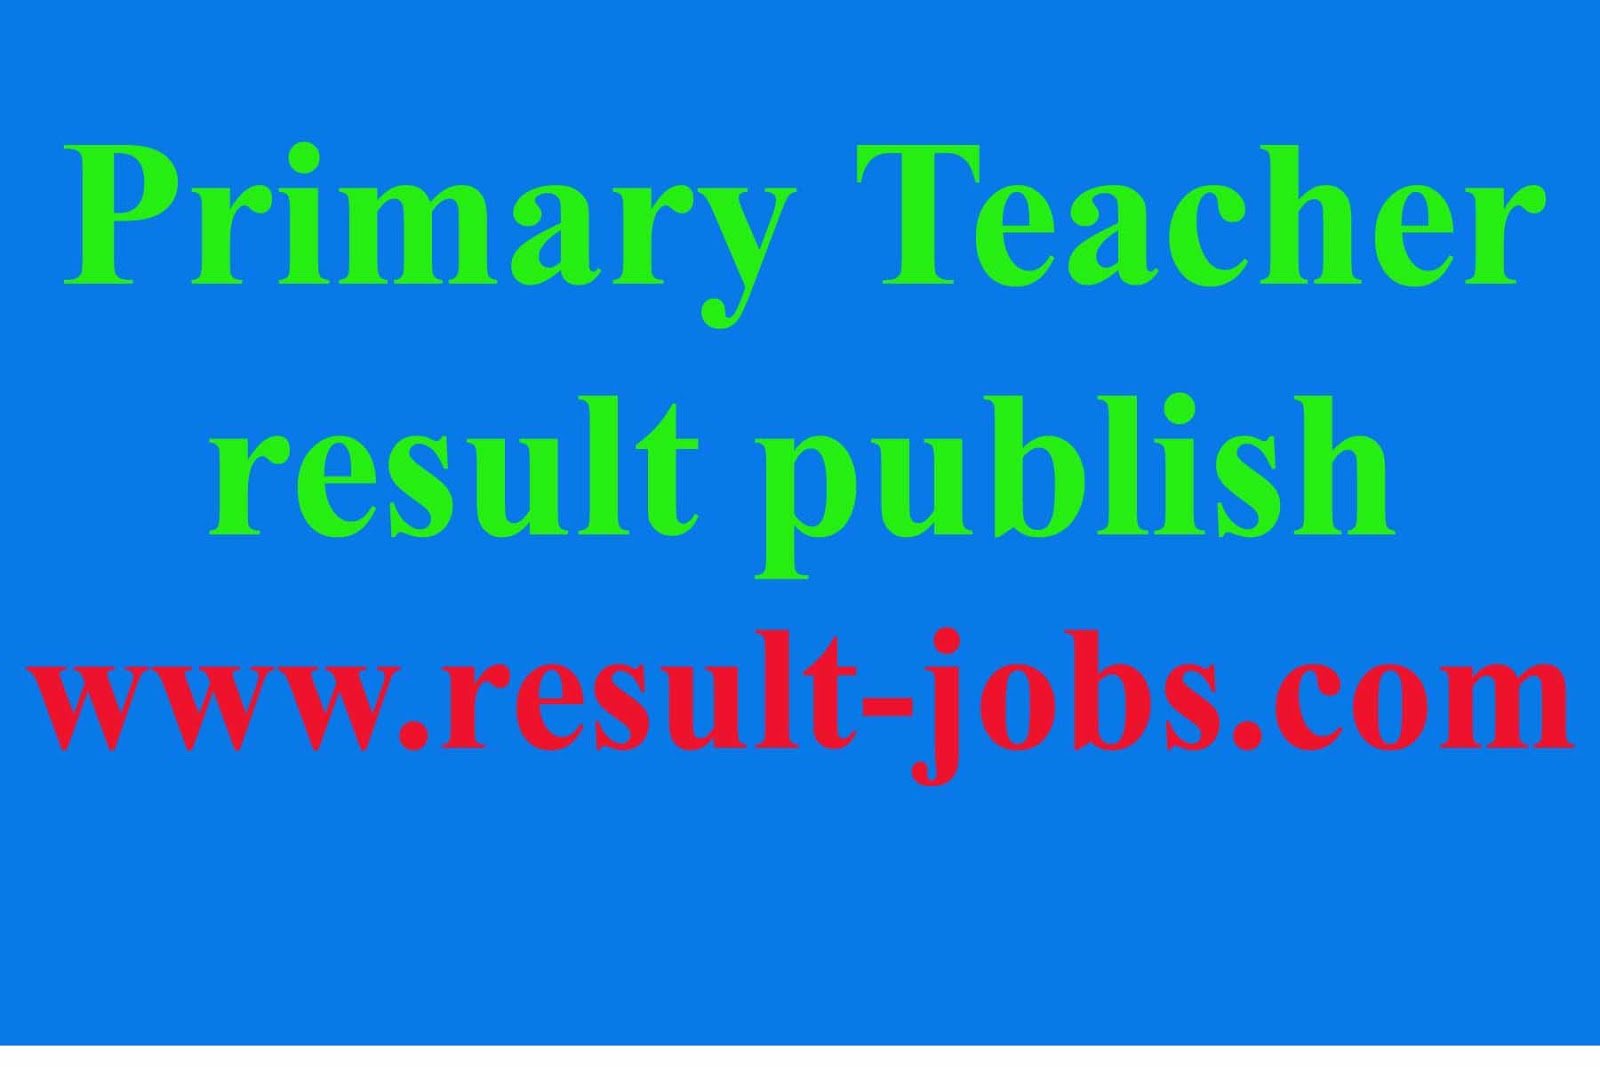 Dpe exam result, primary exam result-primary exam result 2019,